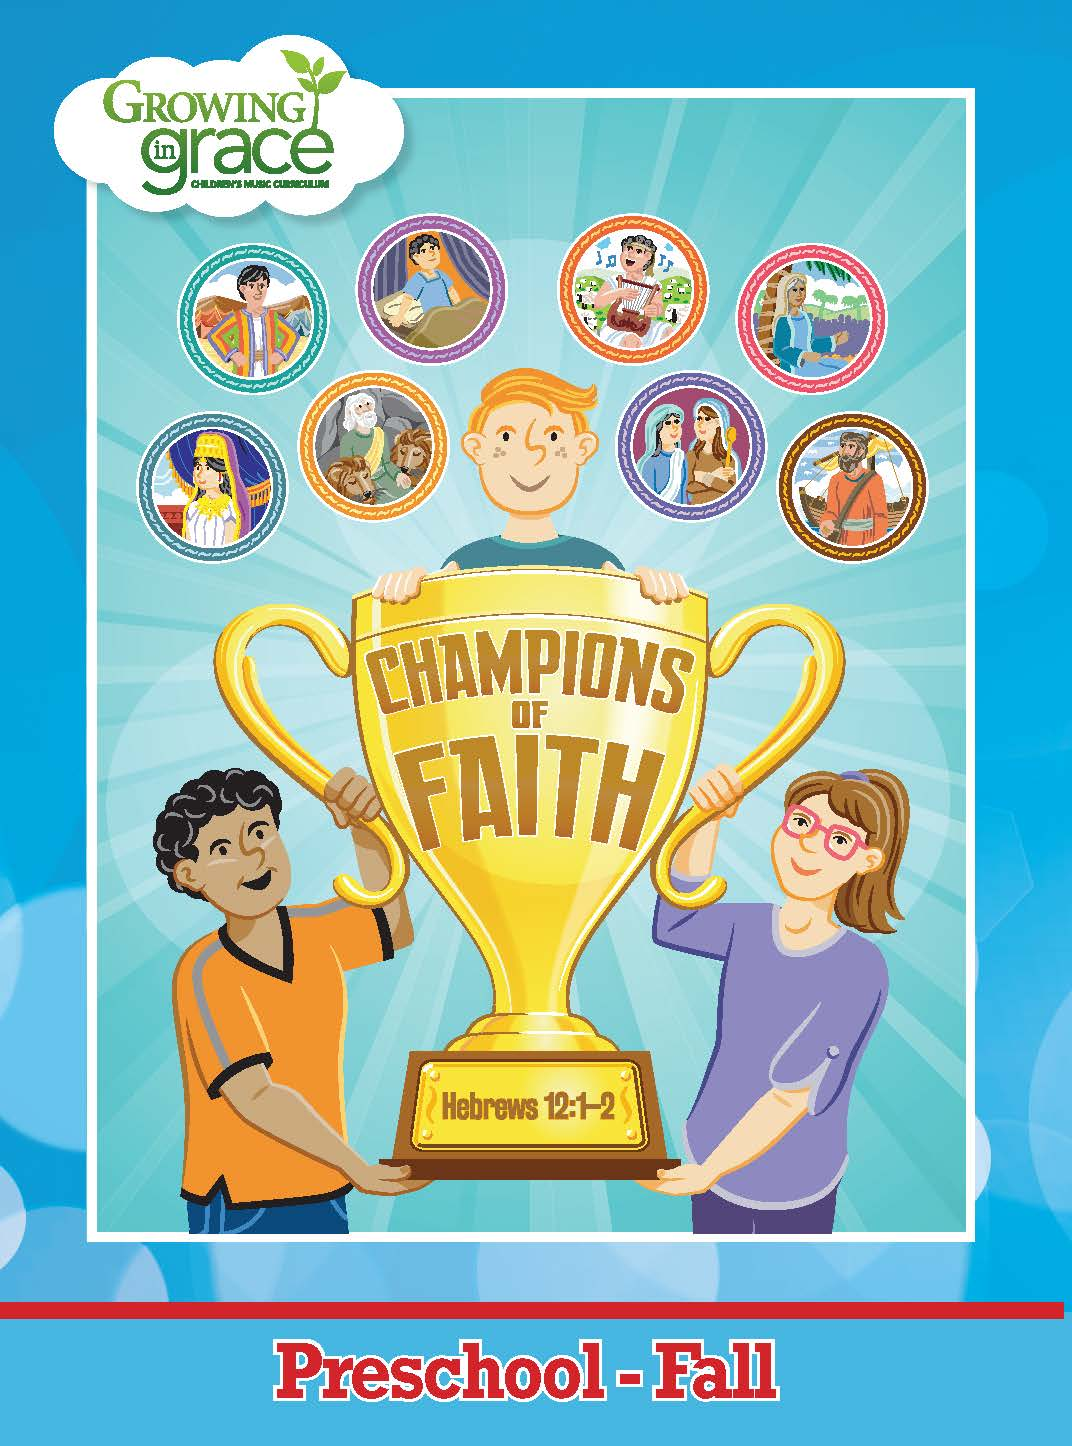 Champions of Faith from Growing in Grace: Preschool - Fall